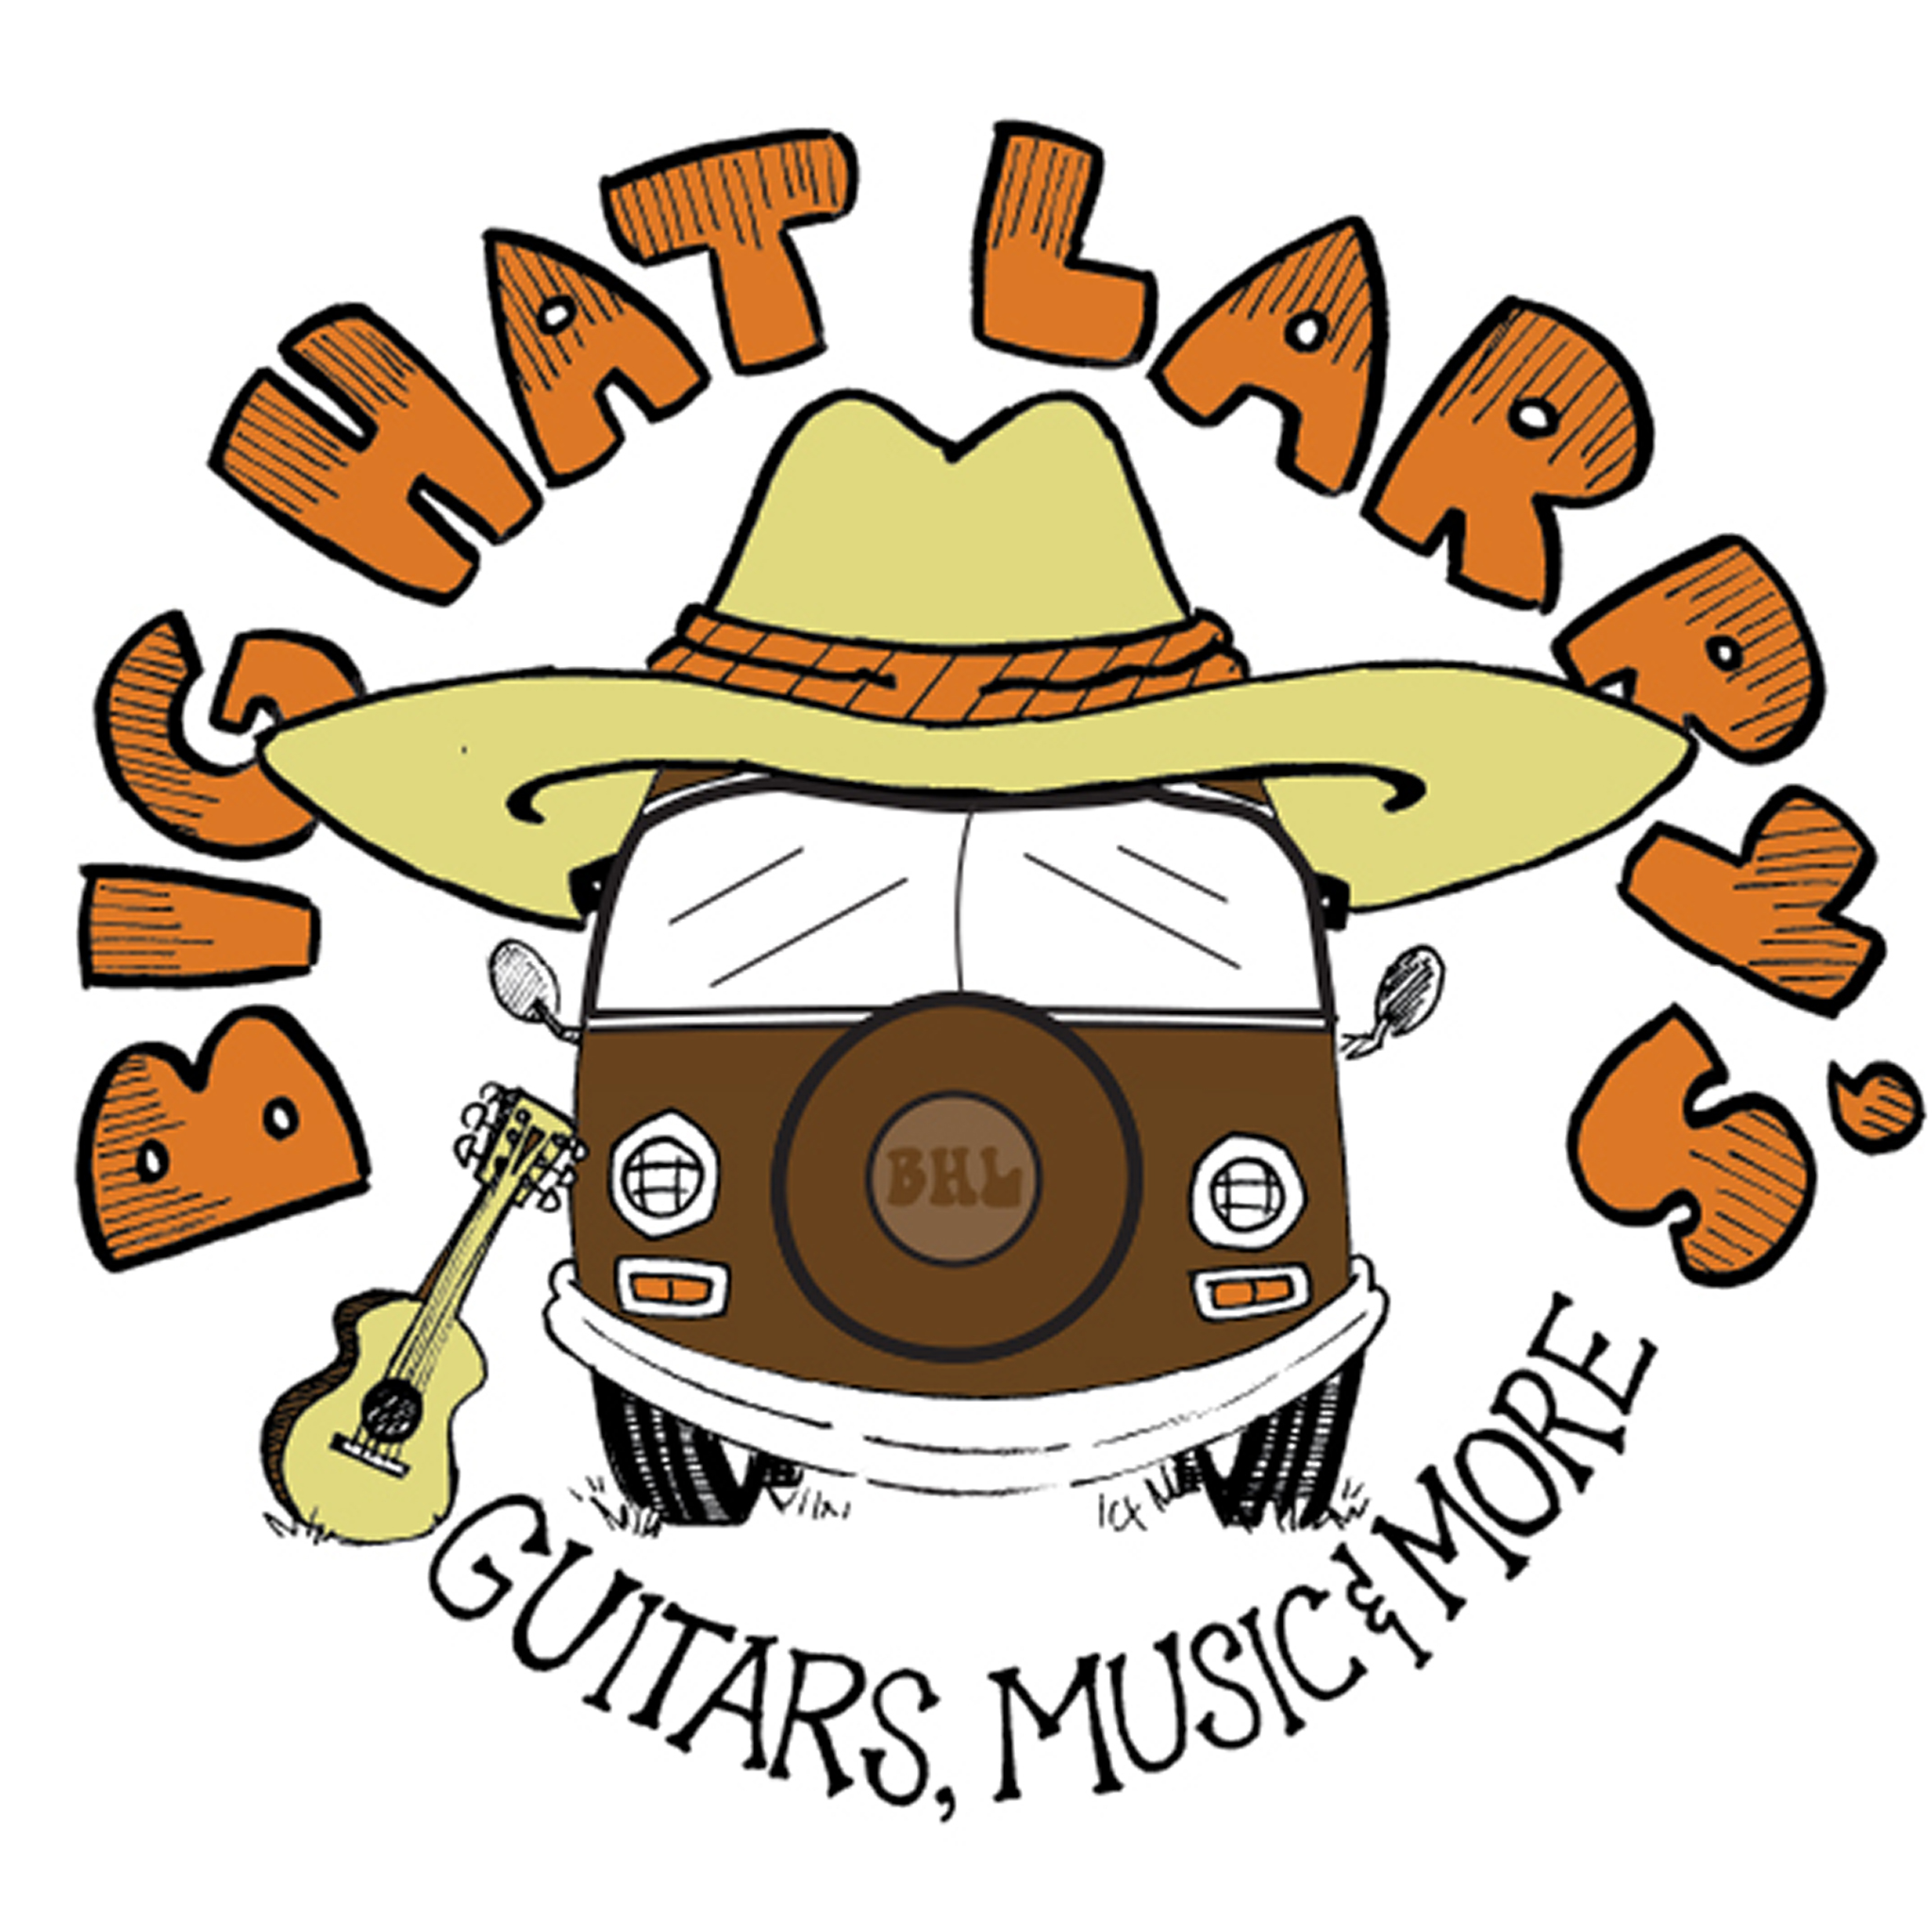 Big Hat Larry's Guitars, Music & More